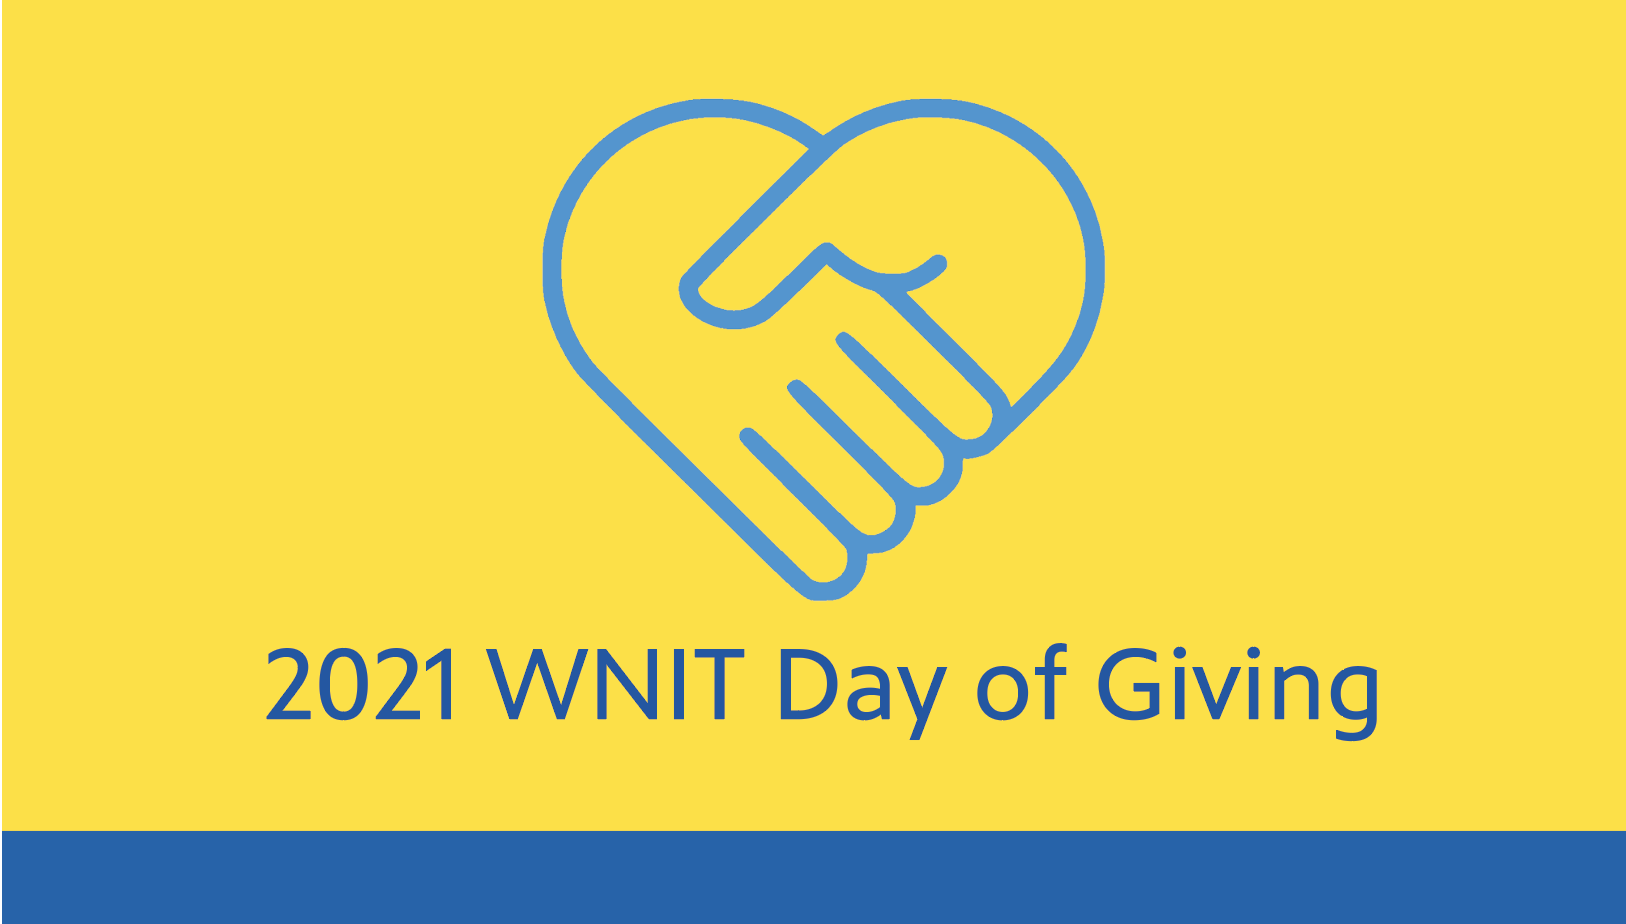 Thank You for making the 2021 WNIT Day of Giving a Huge Success Image